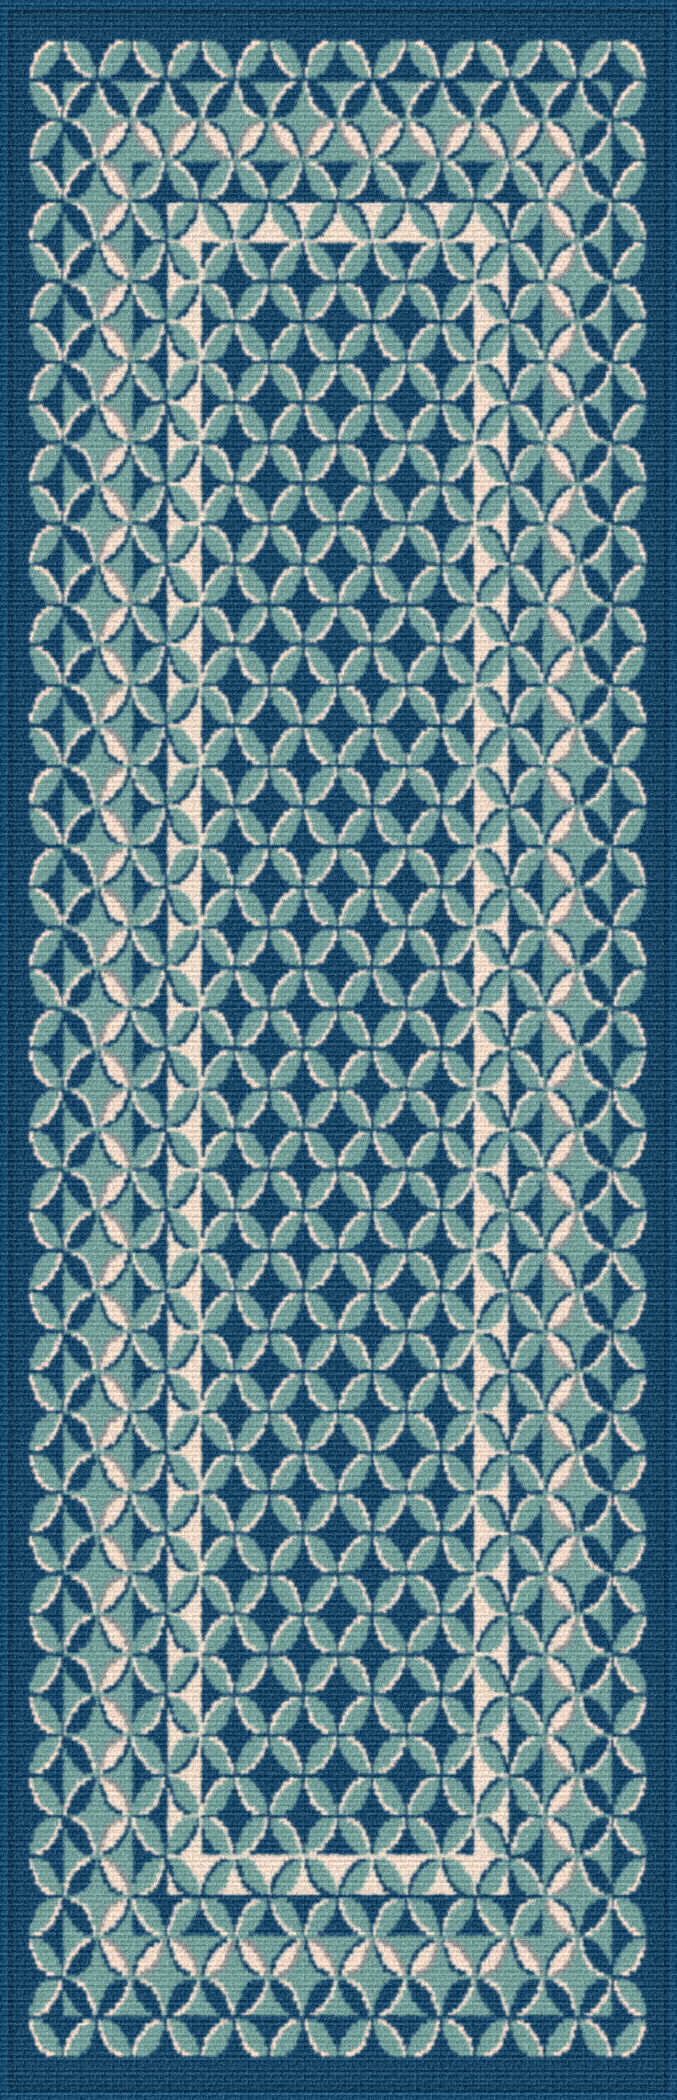 Garden City Gct1026 Navy Contemporary Area Rug